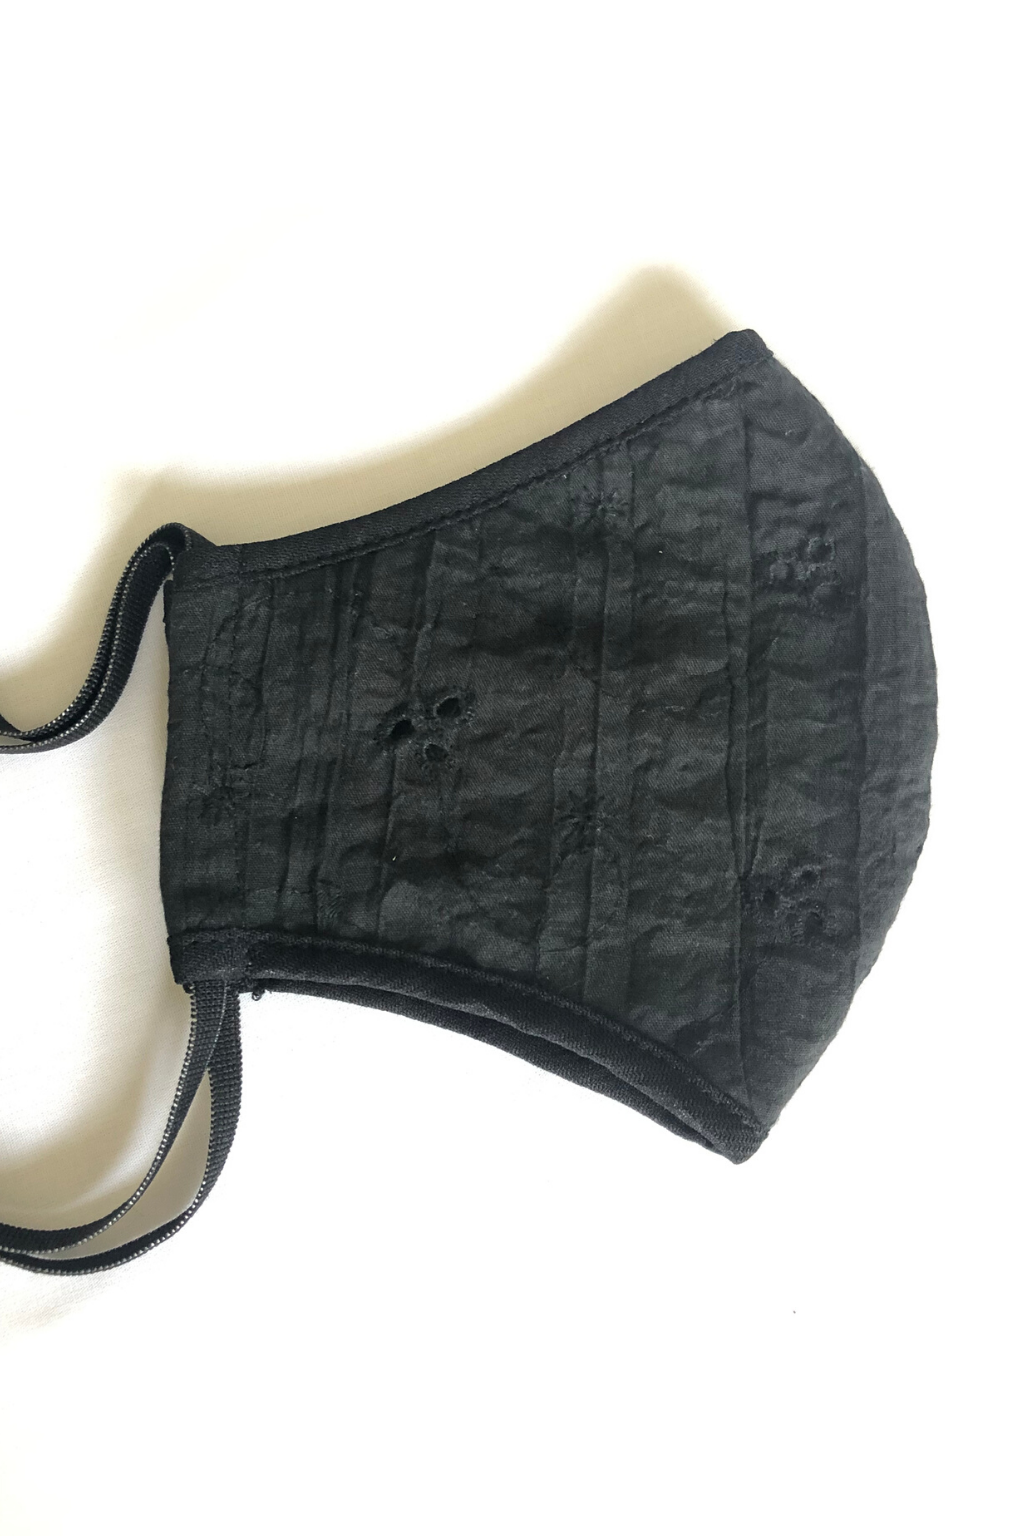 KOKOON Covid 19 cornovirus non medical Reusable cloth face mask in Black Cotton Eyelet 2